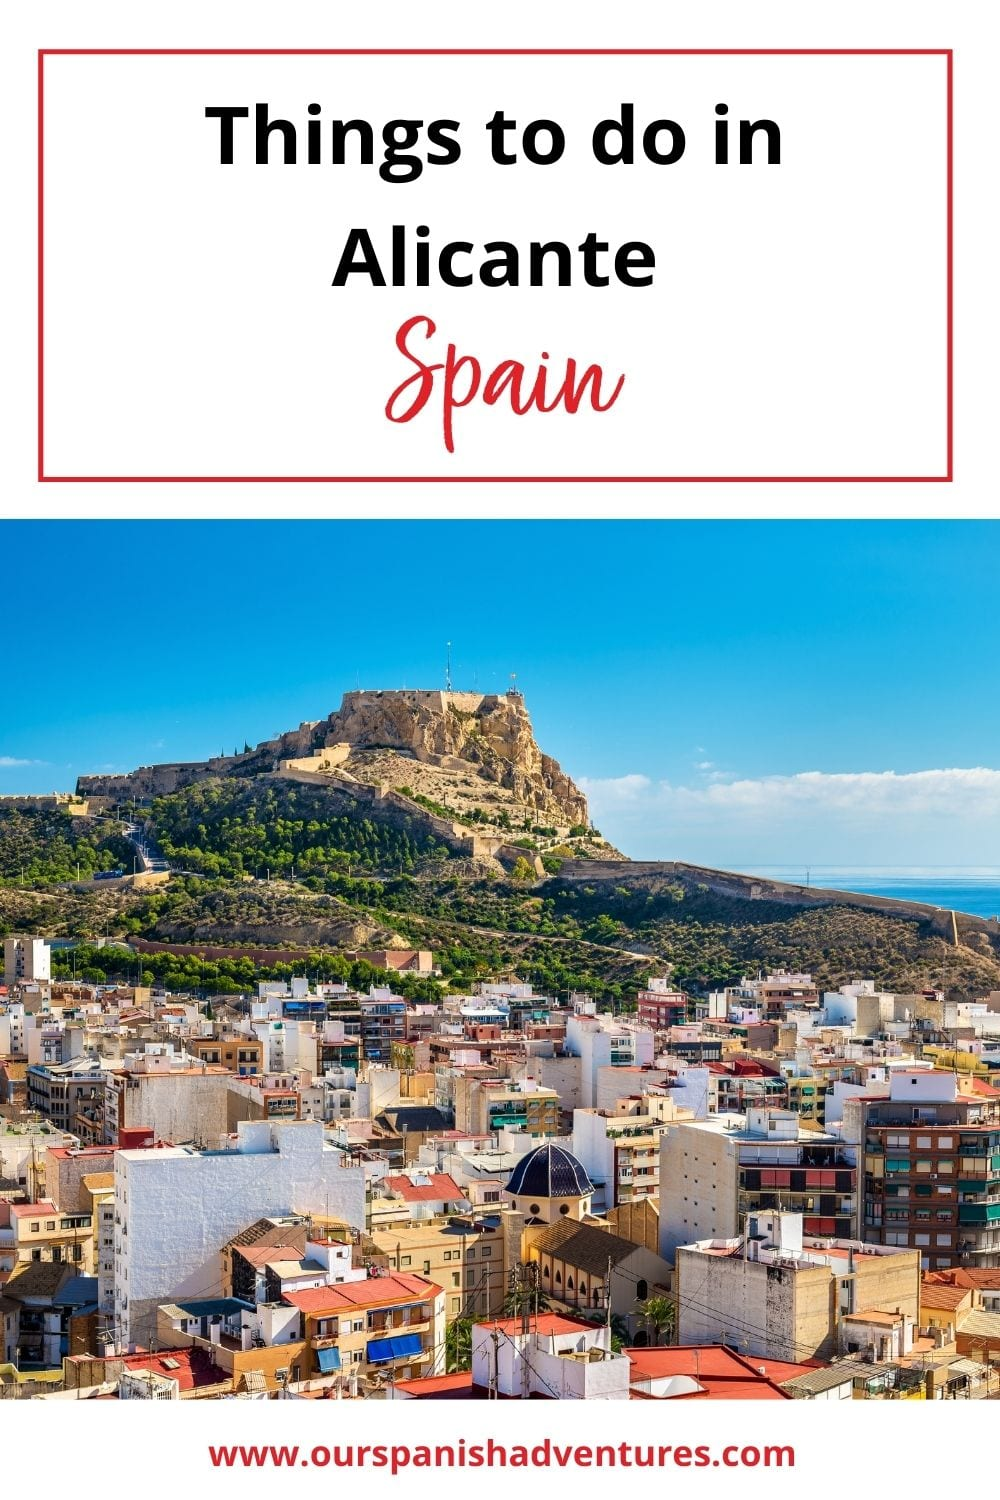 Things to do in Alicante, Spain | Our Spanish Adventures